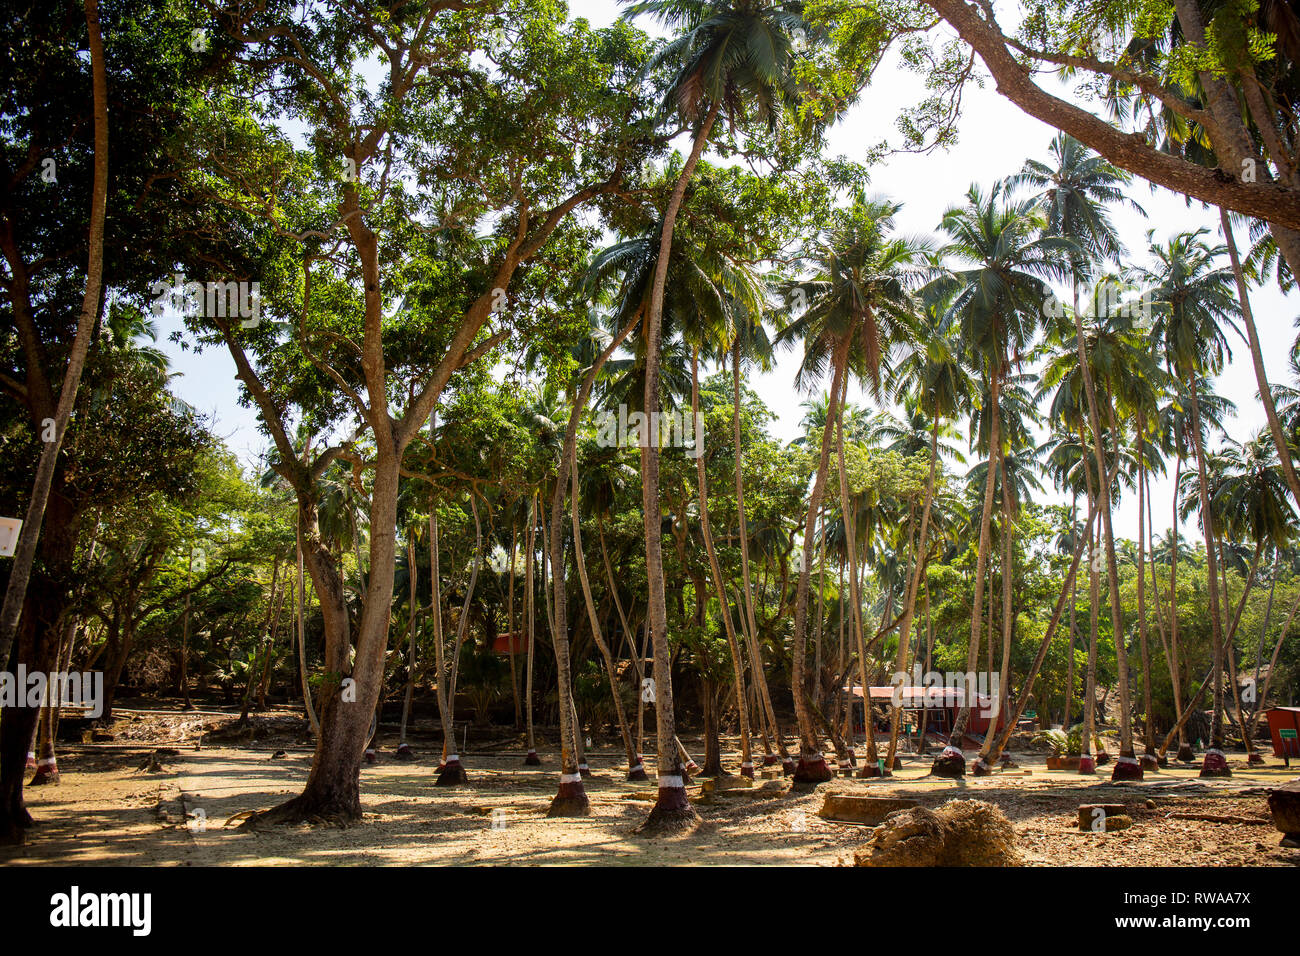 Coconut Trees on Ross island, which is part of the Andaman and Nicobar Islands of India. - Stock Image